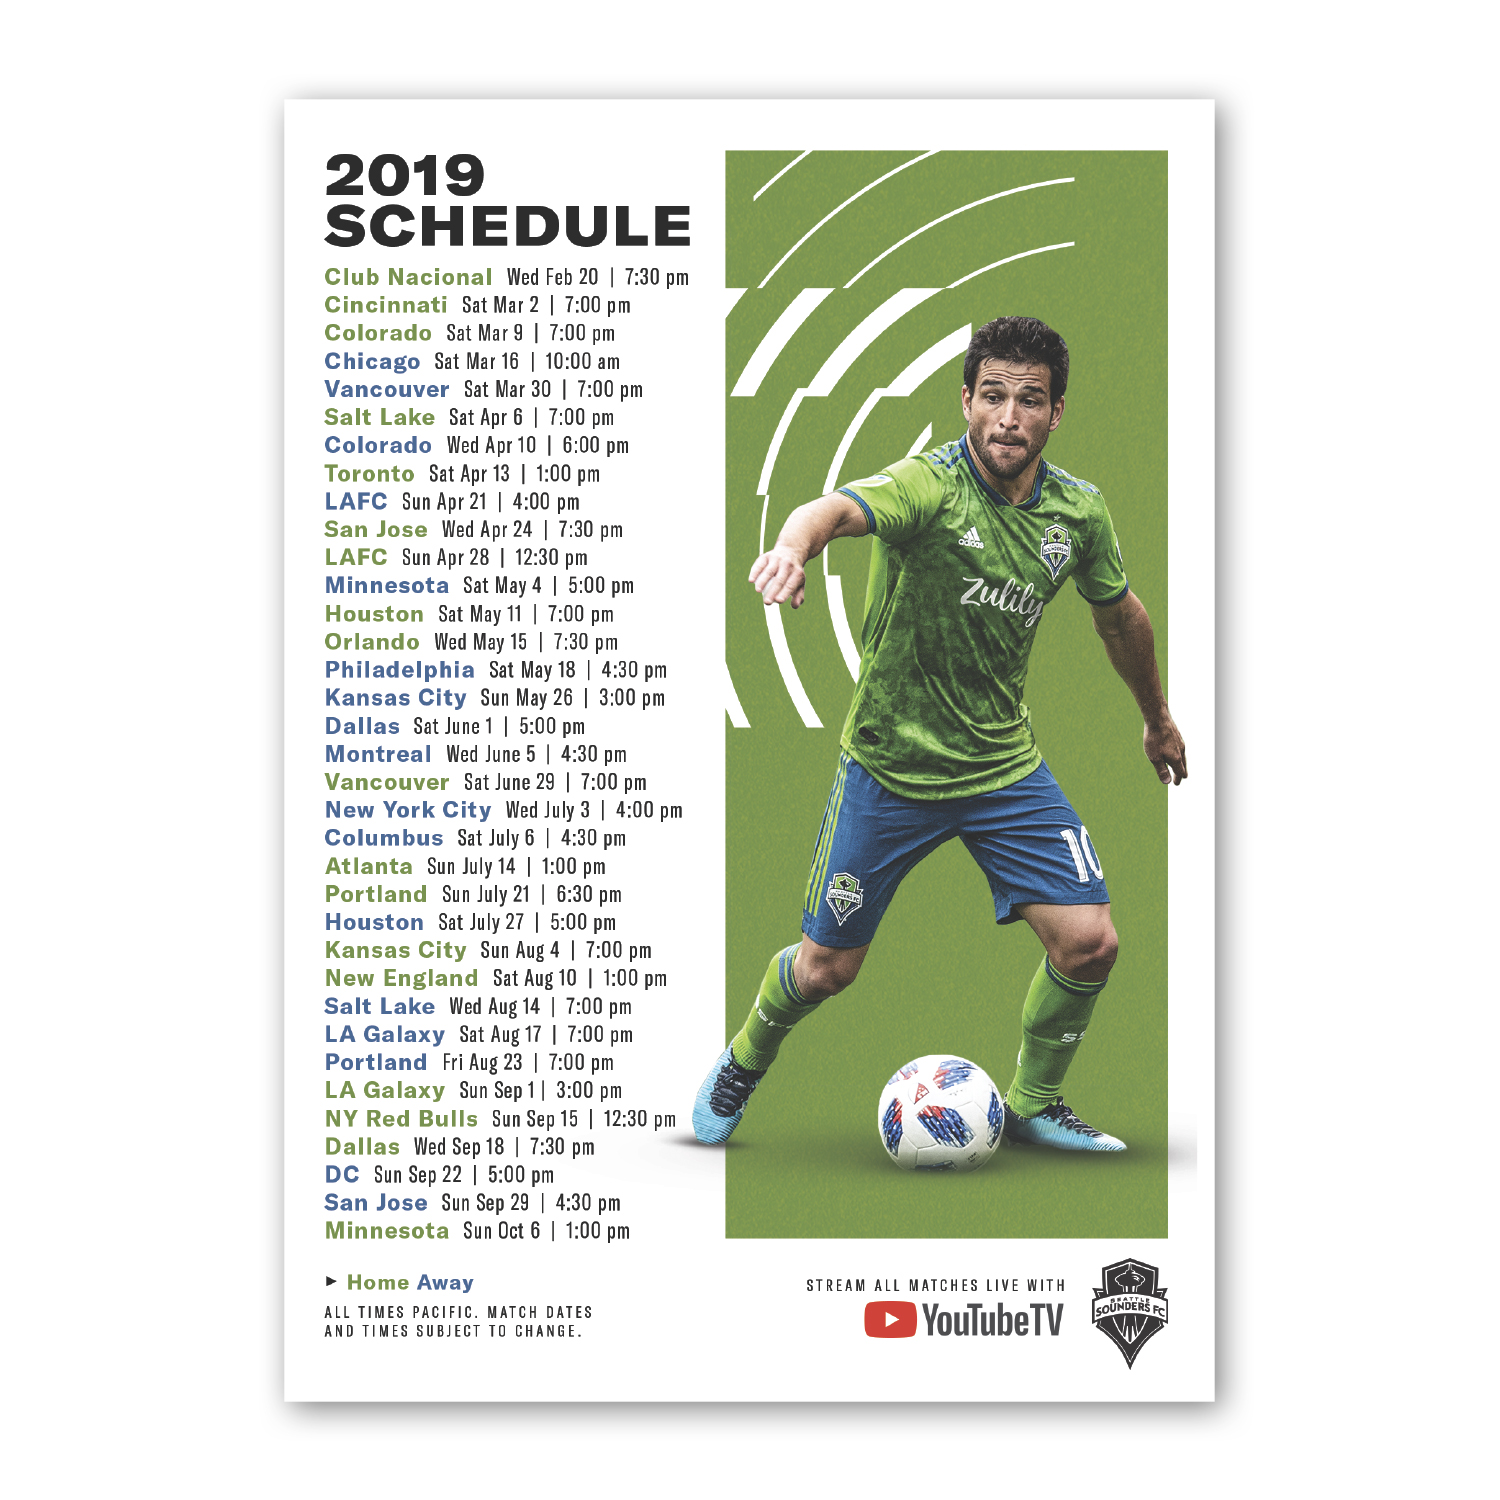 """• S415 Stock Magnet, 5"""" x 7"""", .020 thickness  • Game day giveaway schedule magnet for Seattle Sounders, 20,000 piece order."""